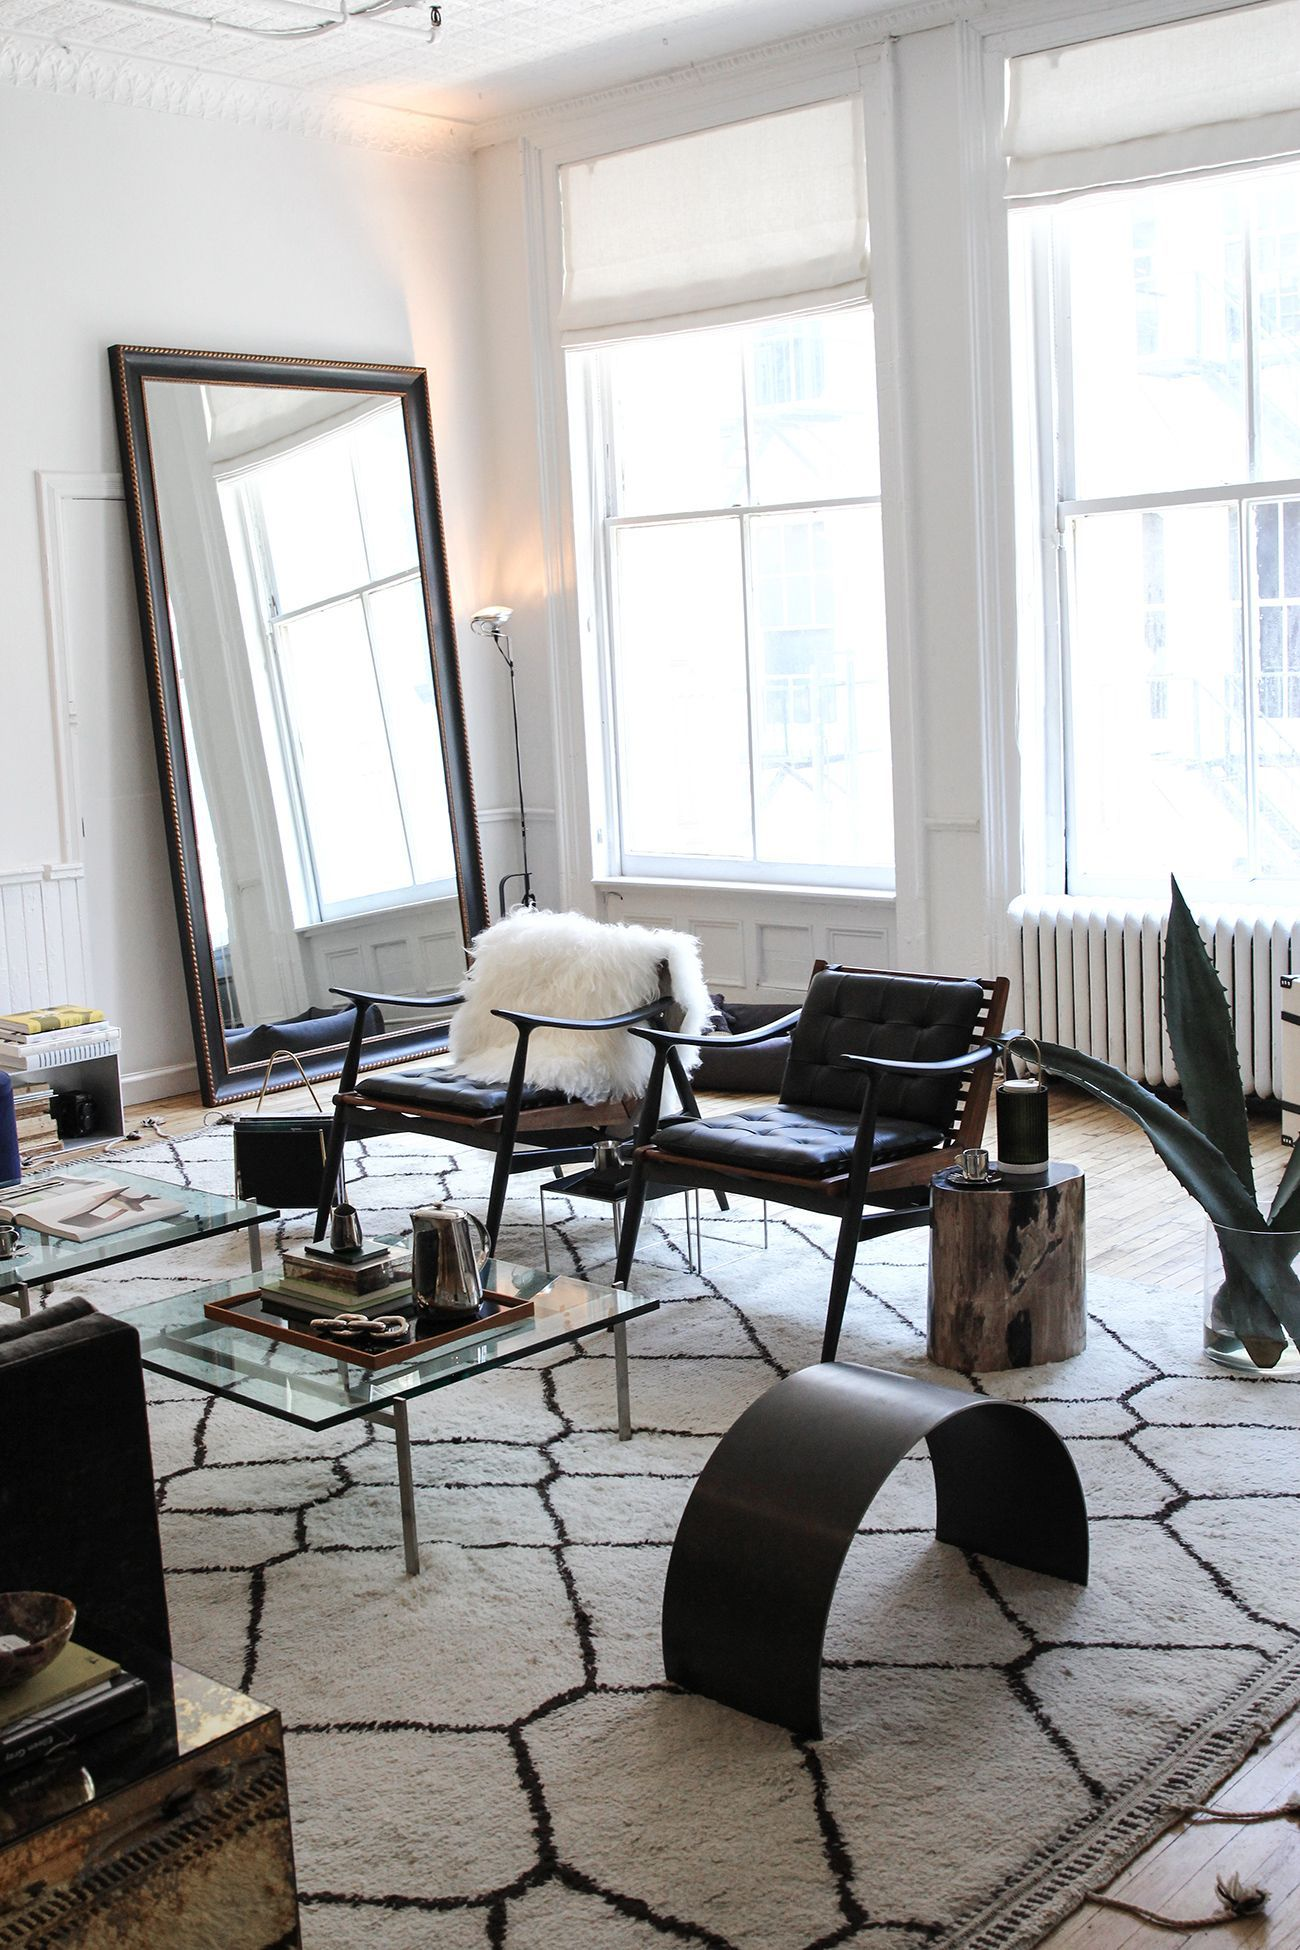 That Mirror In The Back Is Definitely Catching My Eye. Placing Large Mirrors  By Your Windows Can Help Open Up And Brighten Your Space!